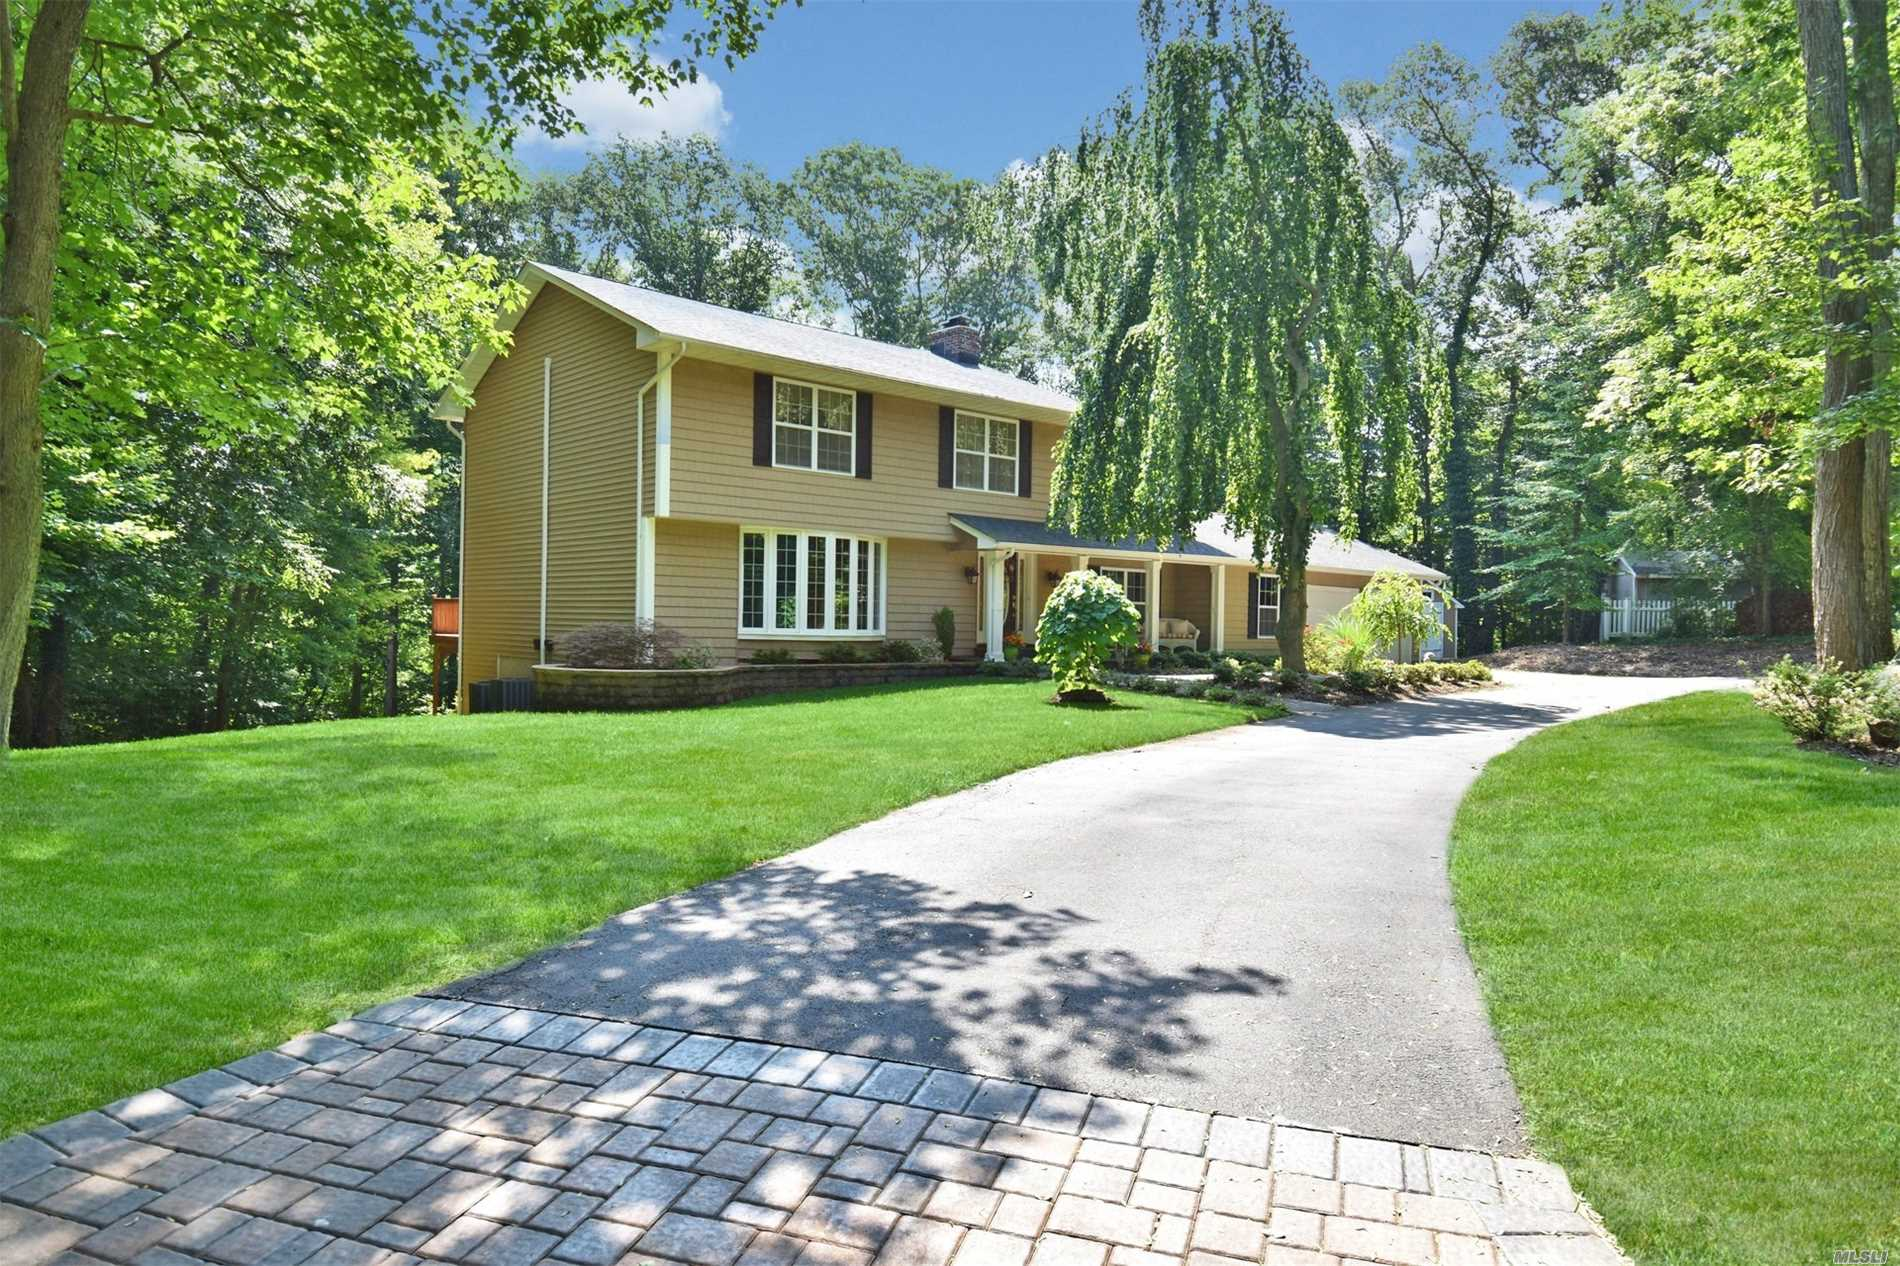 Diamond +++ Luxuriously Renovated Center Hall Colonial With Open Floor Plan Set In Tranquil Cul-De-Sac./Court. This Impressive Home Boasts, Wainscoting, Hardwood Flooring, Crown Molding, Cozy Fp, Vaulted Ceiling, Custom Granite Eat In Kitchen W/Center Island, S.S. Appliances, Deluxe Baths, Windows, Cac, Roof, Sprawling Deck, Front Porch, .80 Acre, And More. Close To Stony Brook Village & Stony Brook University. In Sought After Prestigious Neighborhood & Three Village Schools.